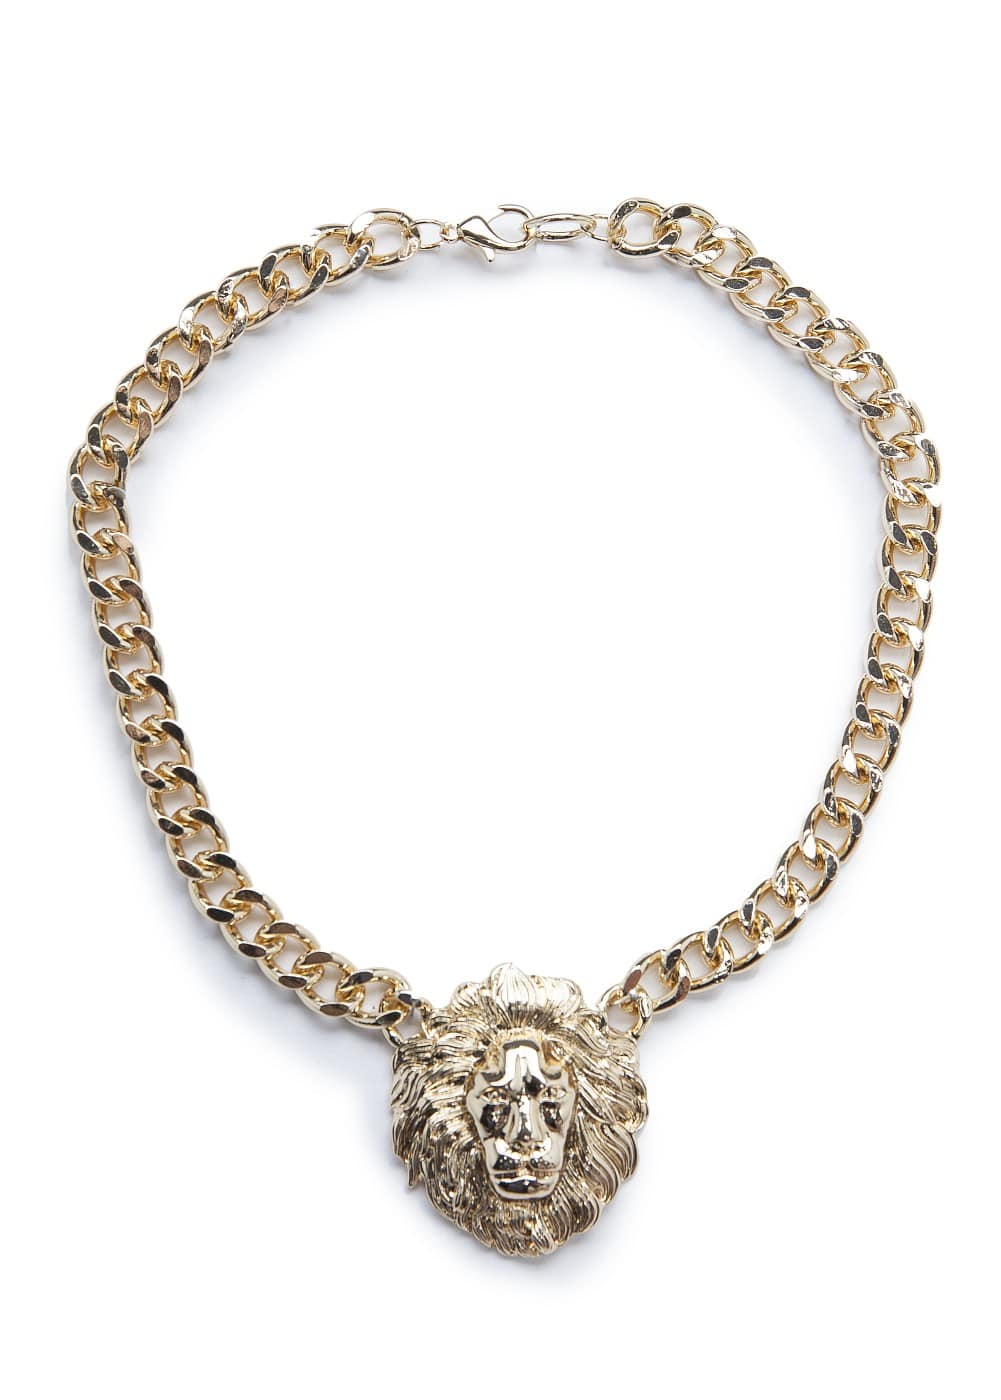 Lion pendant necklace